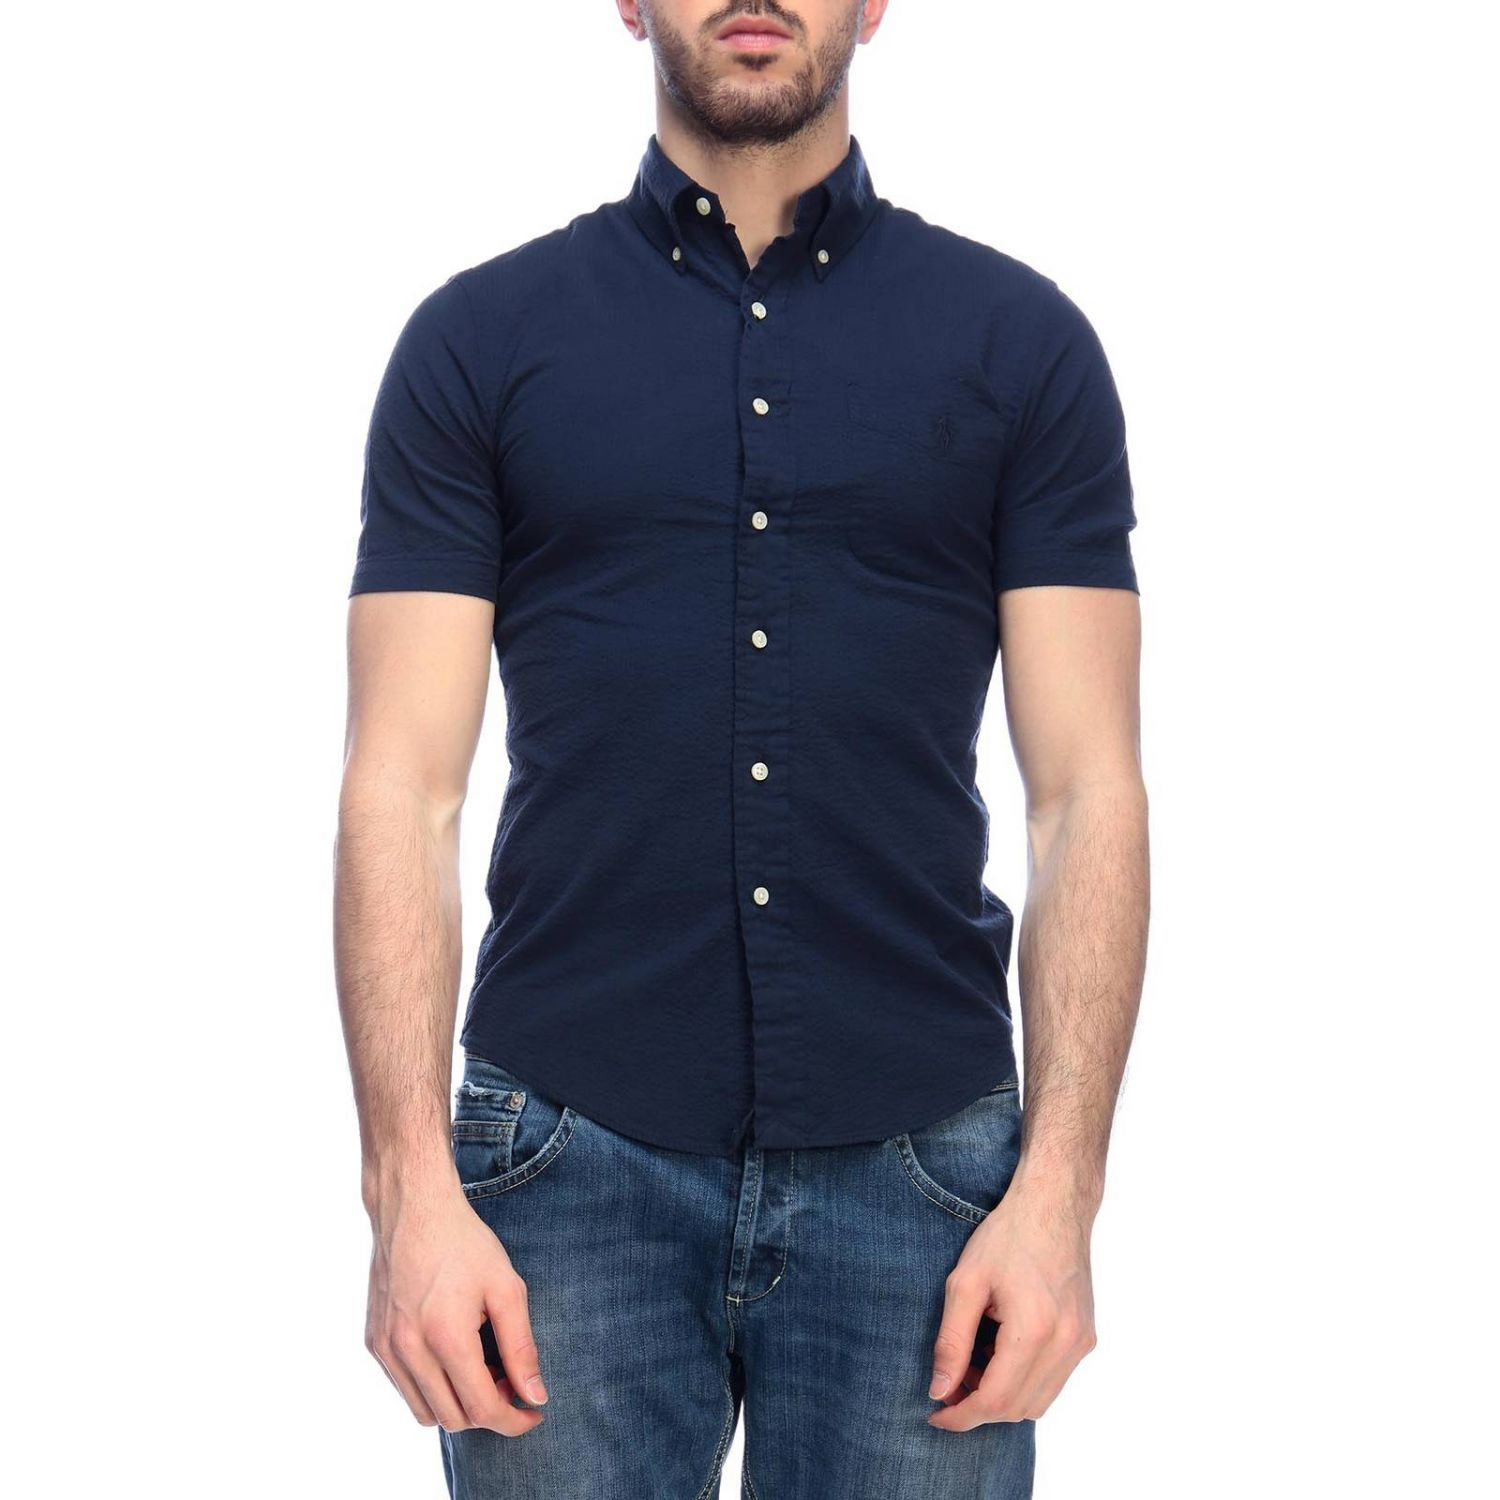 Shirt men Polo Ralph Lauren navy 1